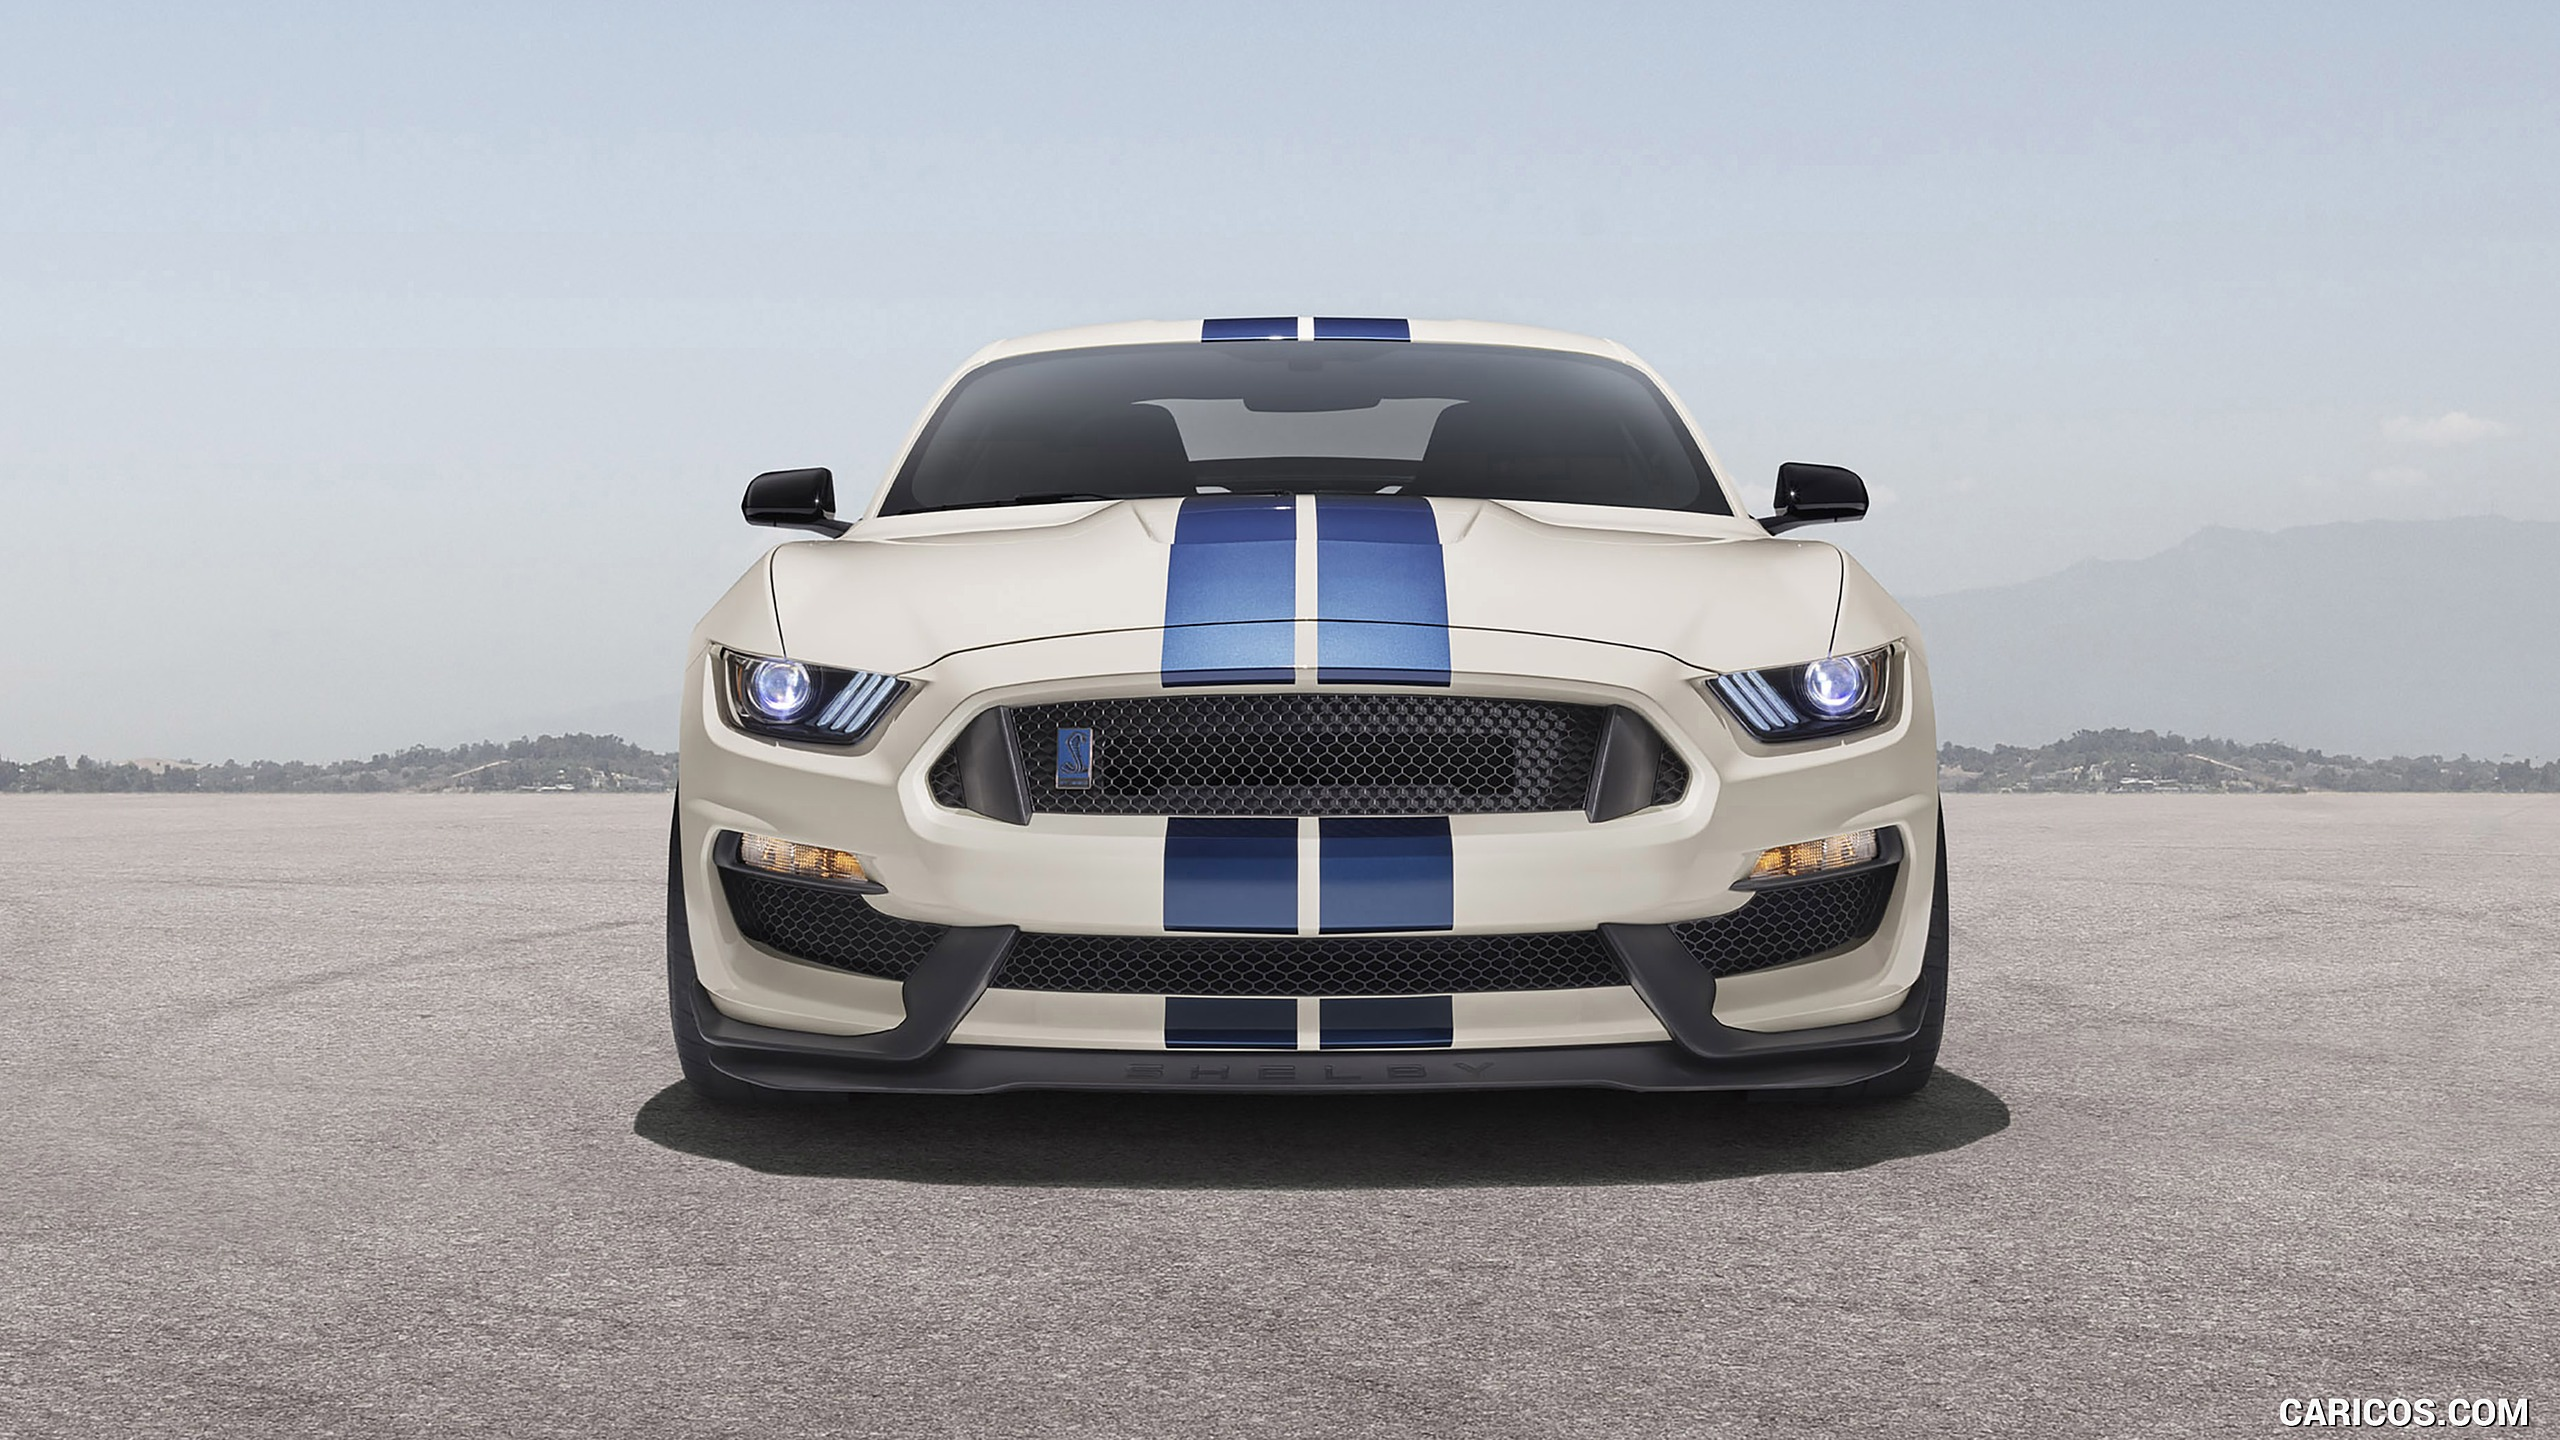 2020 Ford Mustang Shelby GT350 Heritage Edition Package   Front 2560x1440